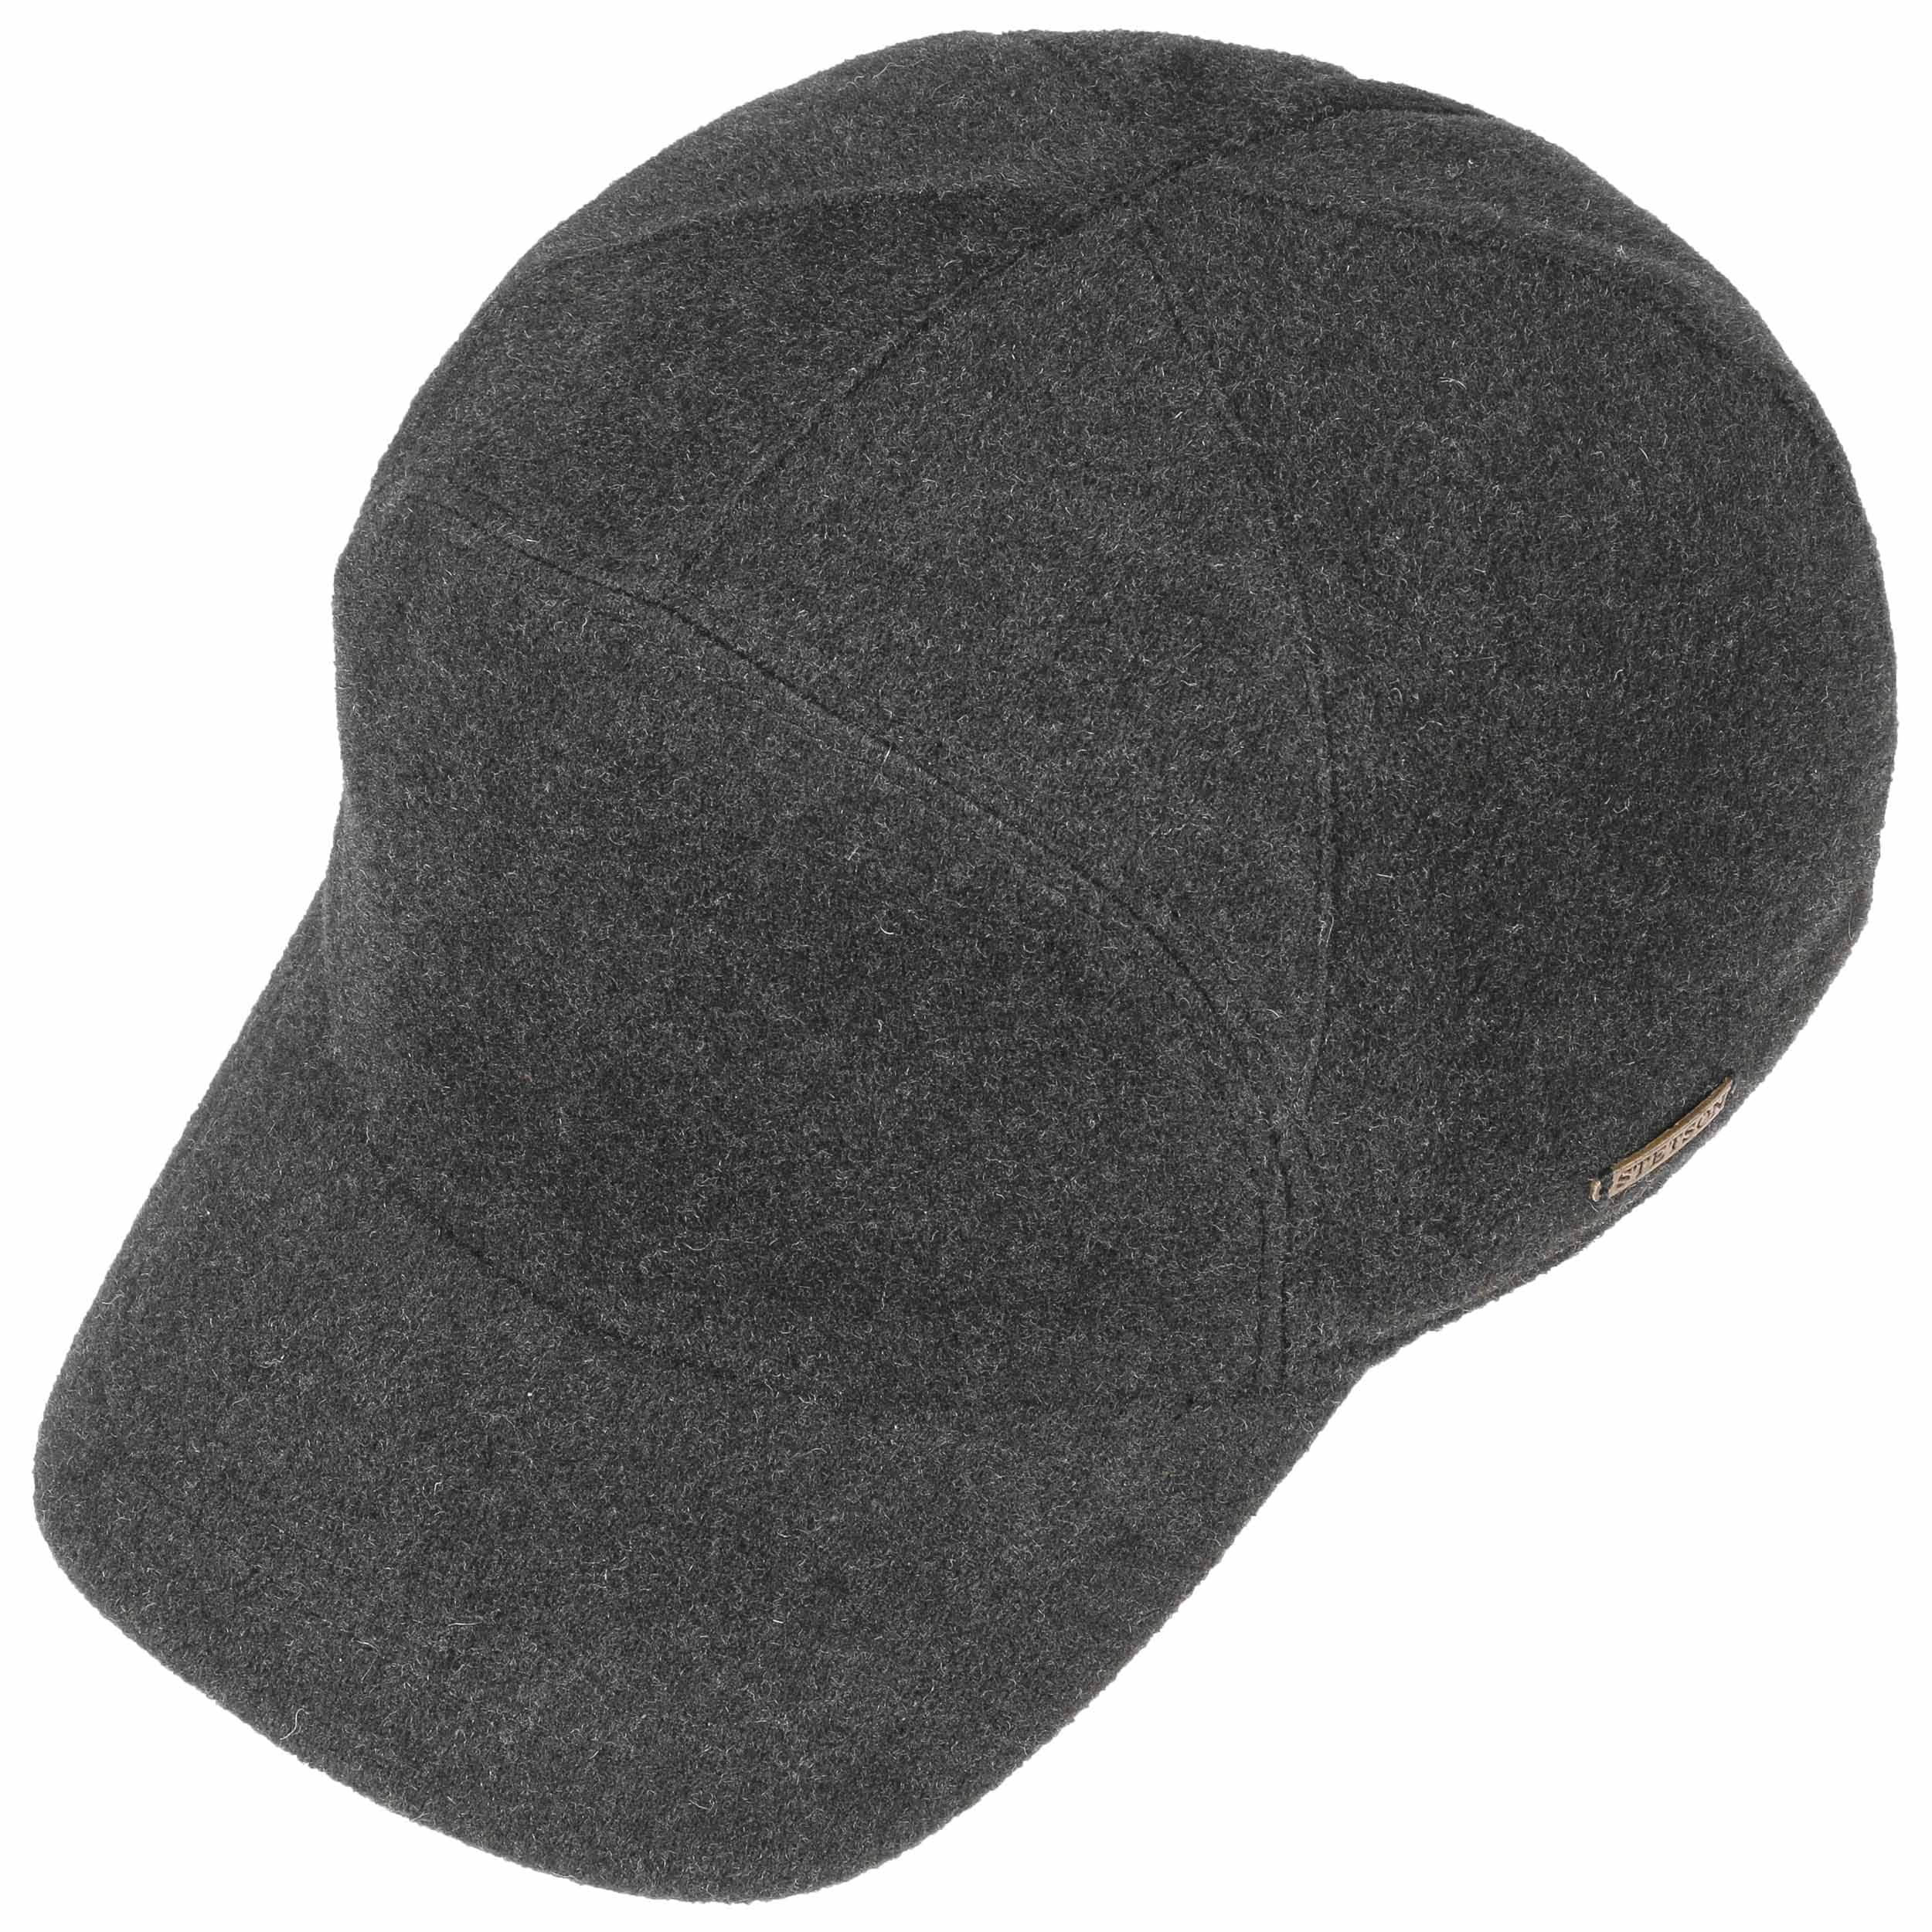 casquette maryman wool earflaps by stetson 69 00. Black Bedroom Furniture Sets. Home Design Ideas